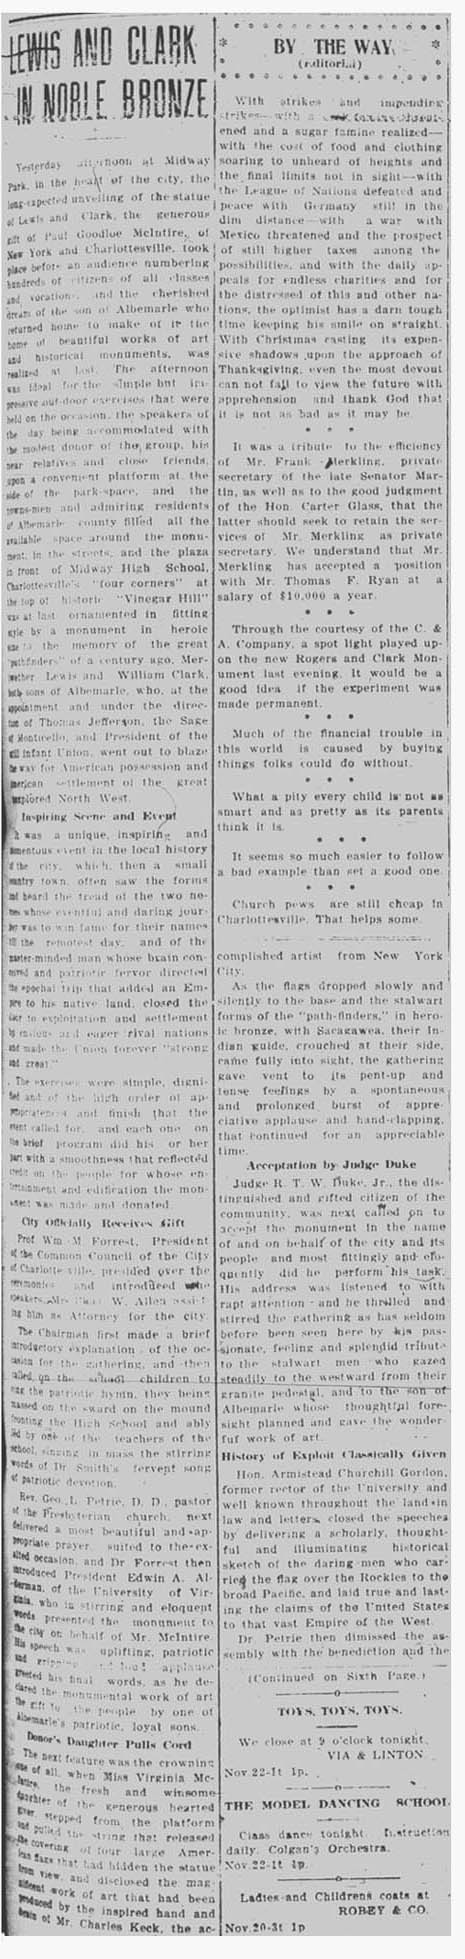 November 22, 1919 Daily Progress article on the unveiling. Courtesy of the Virginia Center for Digital History at the University of Virginian.